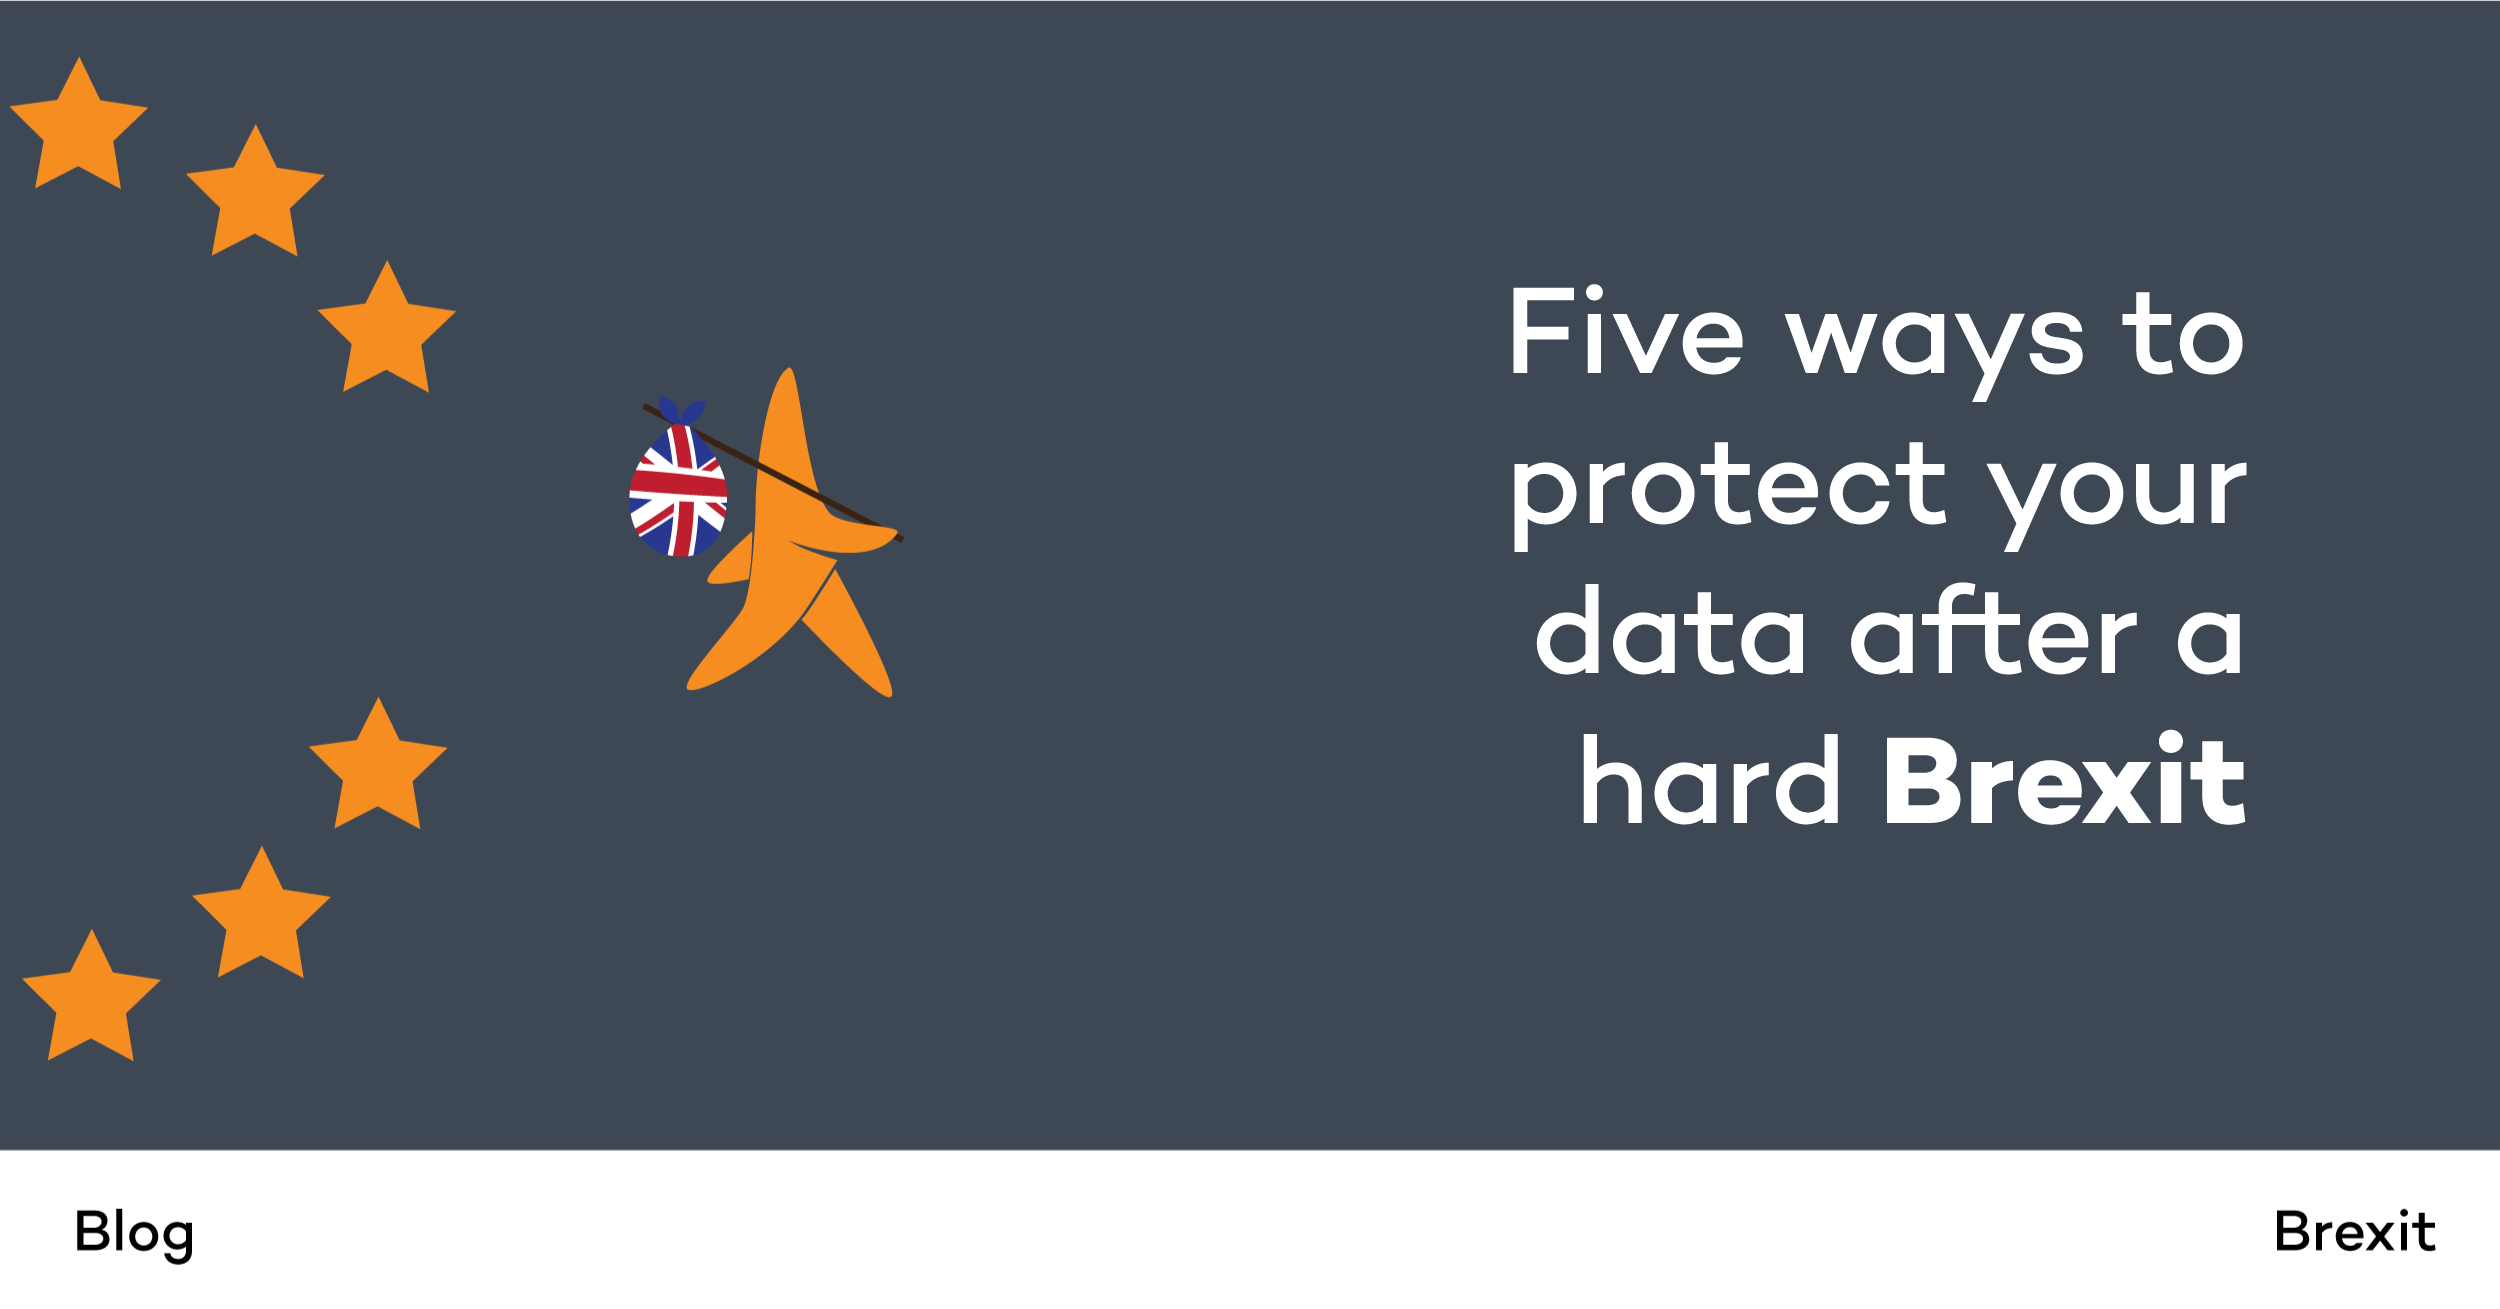 Five ways to protect your data after a hard Brexit